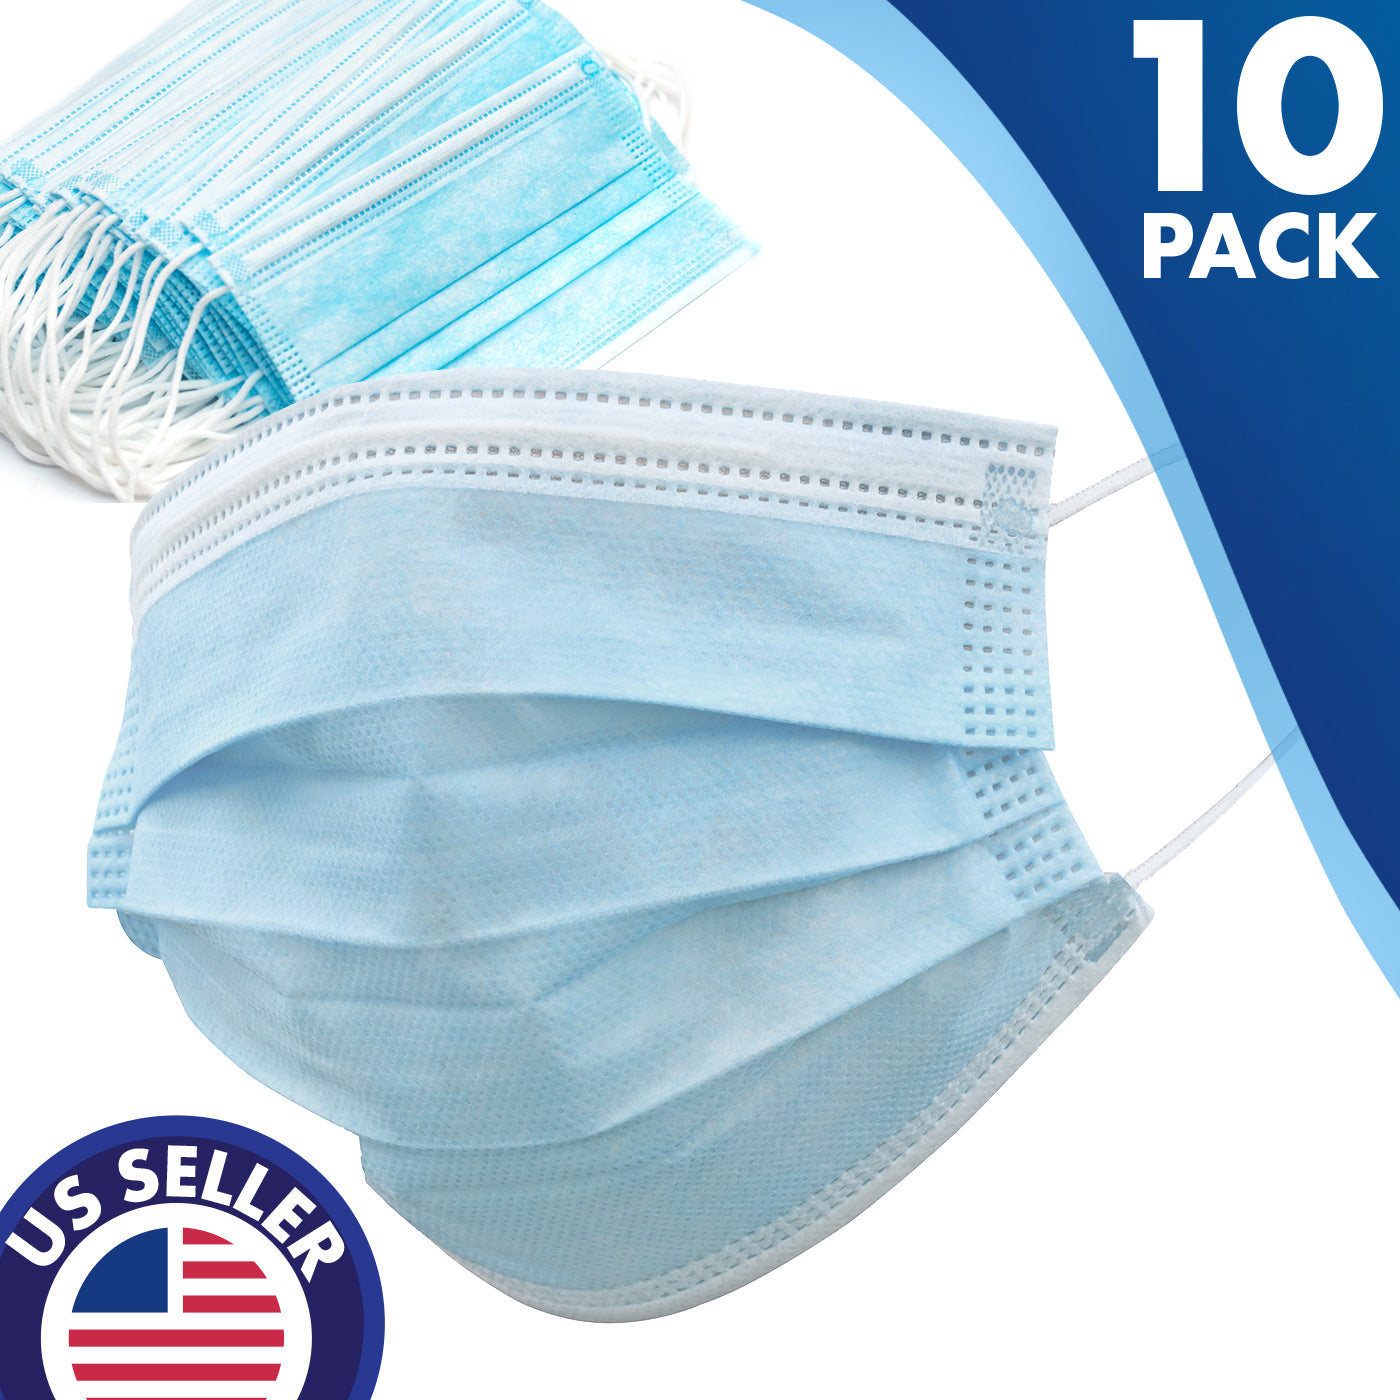 Disposable Ultimate Protect Face Mask Virus Flu Medical Face Mask 10 PK